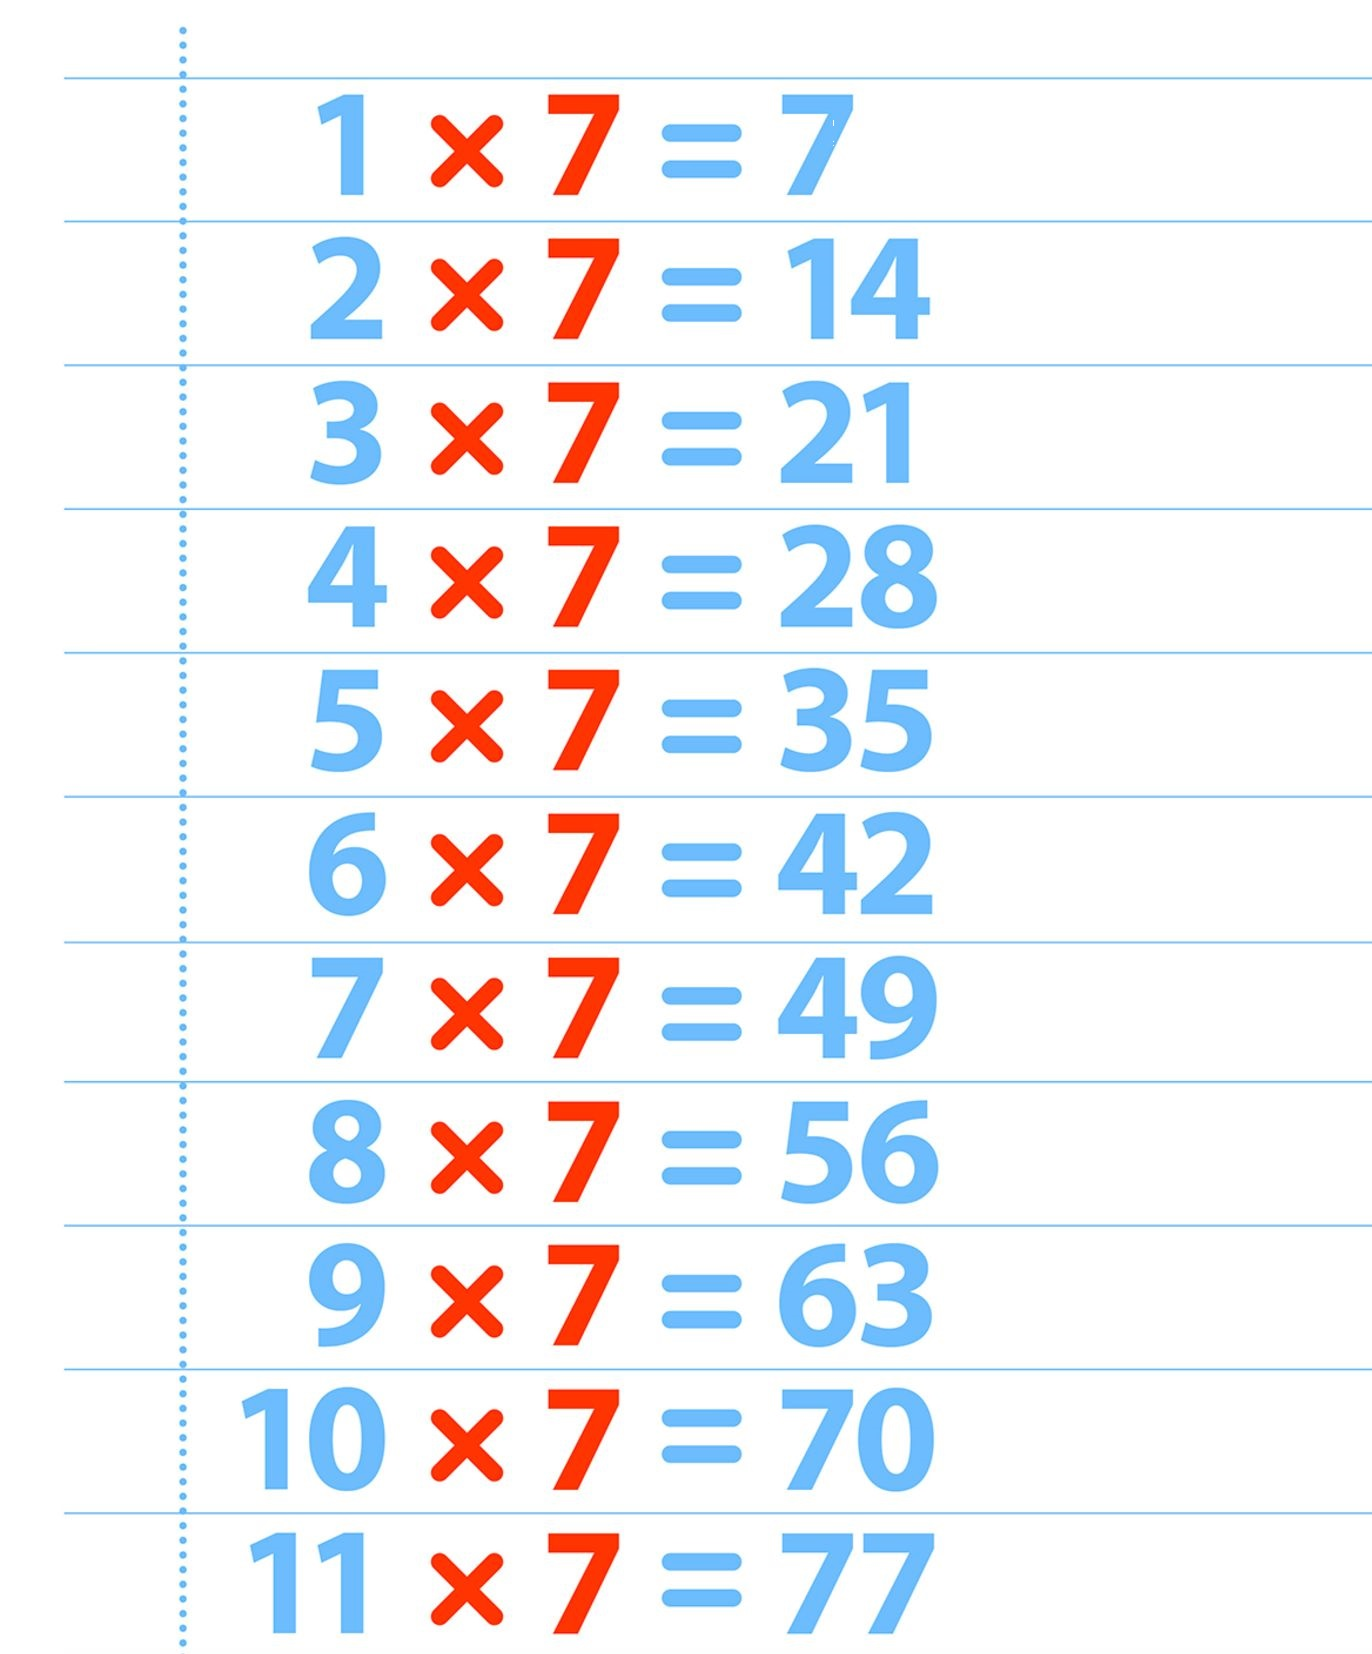 Free Printable Multiplication Table Of 7 Charts